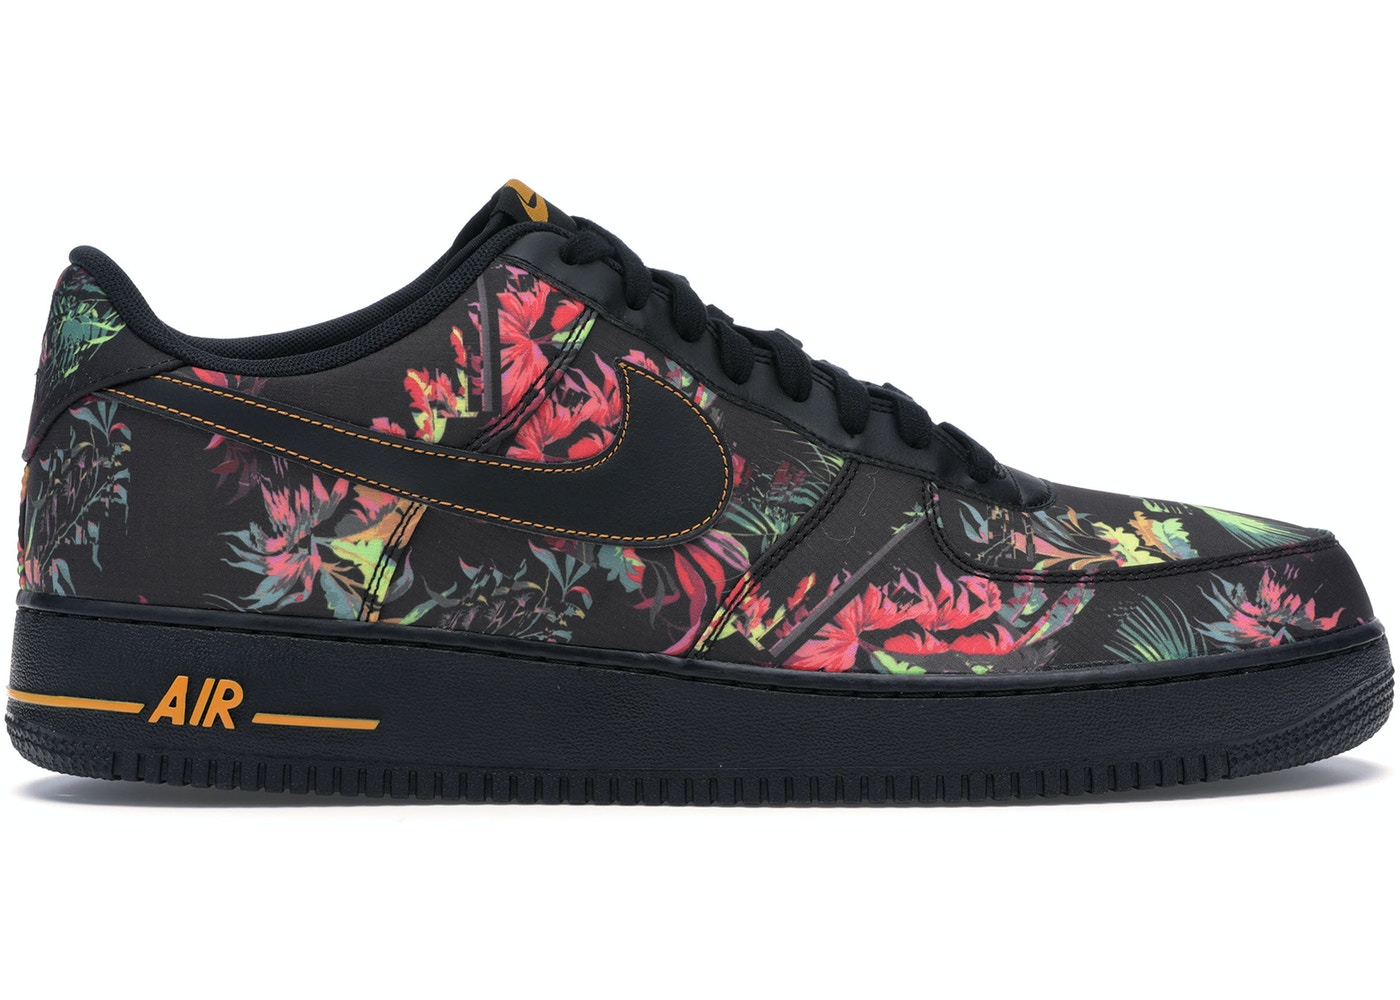 low priced e2086 5aec1 Air Force 1 Low Floral (2019) - BV6068-001